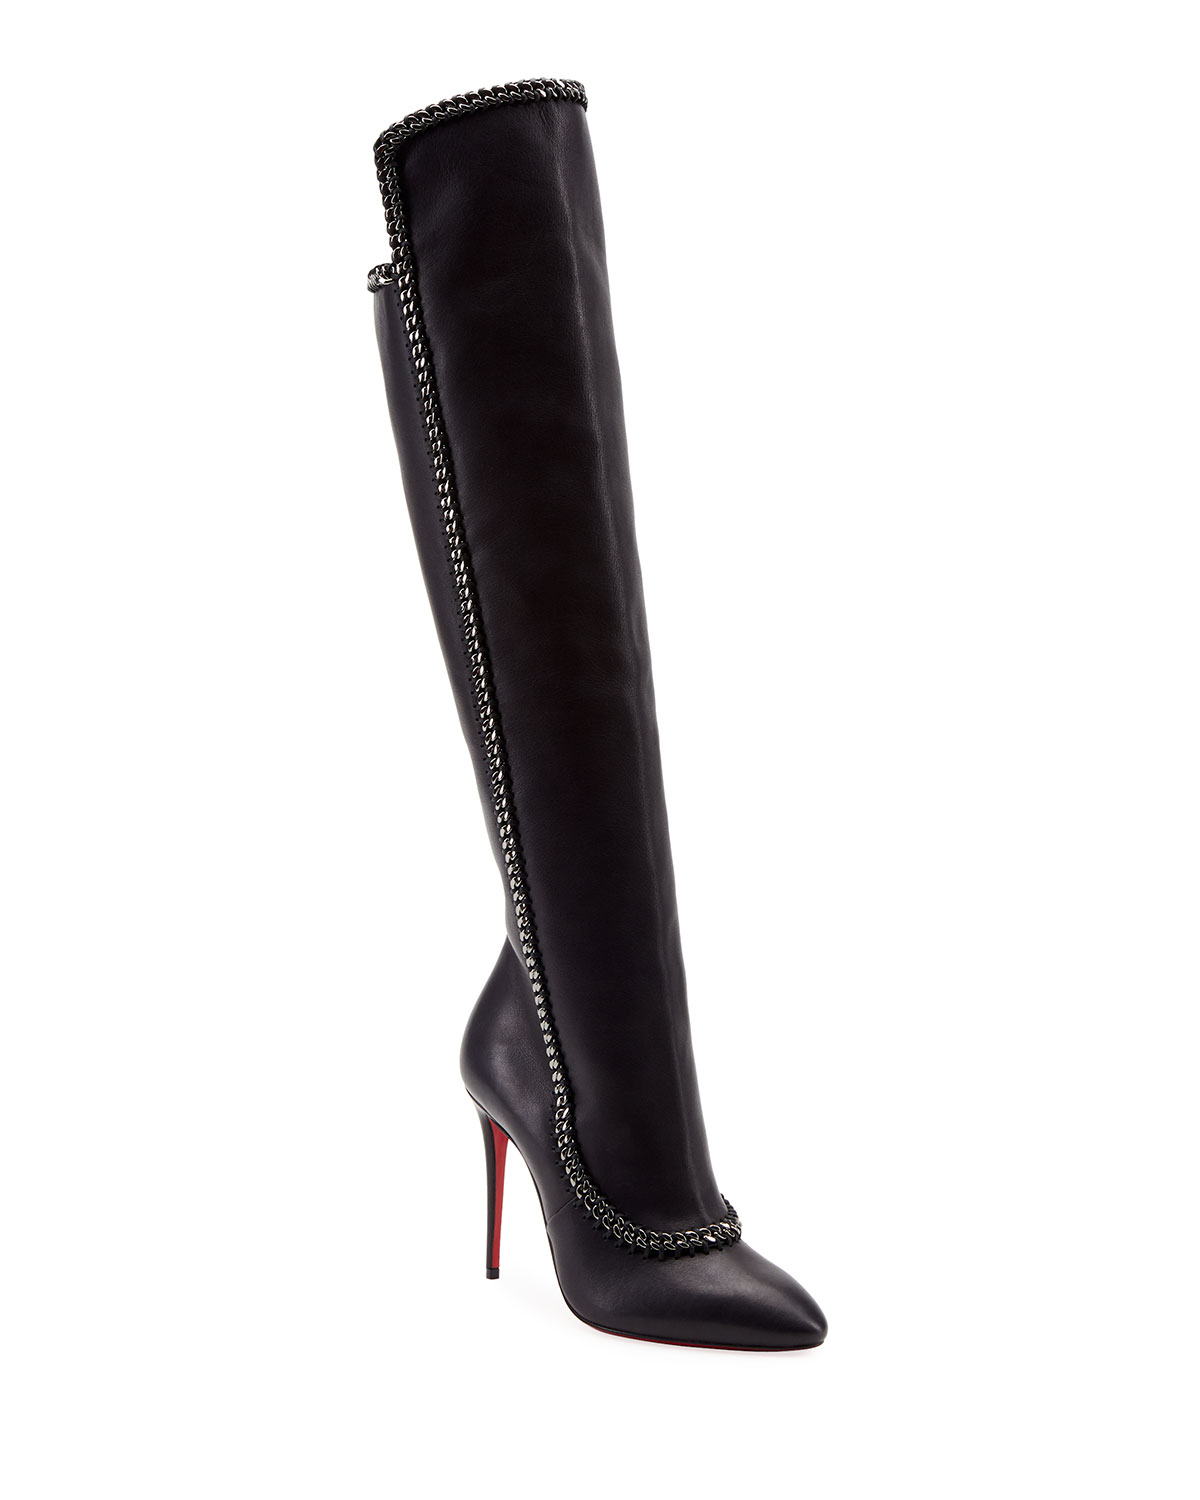 timeless design 2ab01 d9b27 Clemence Botta Red Sole Boots